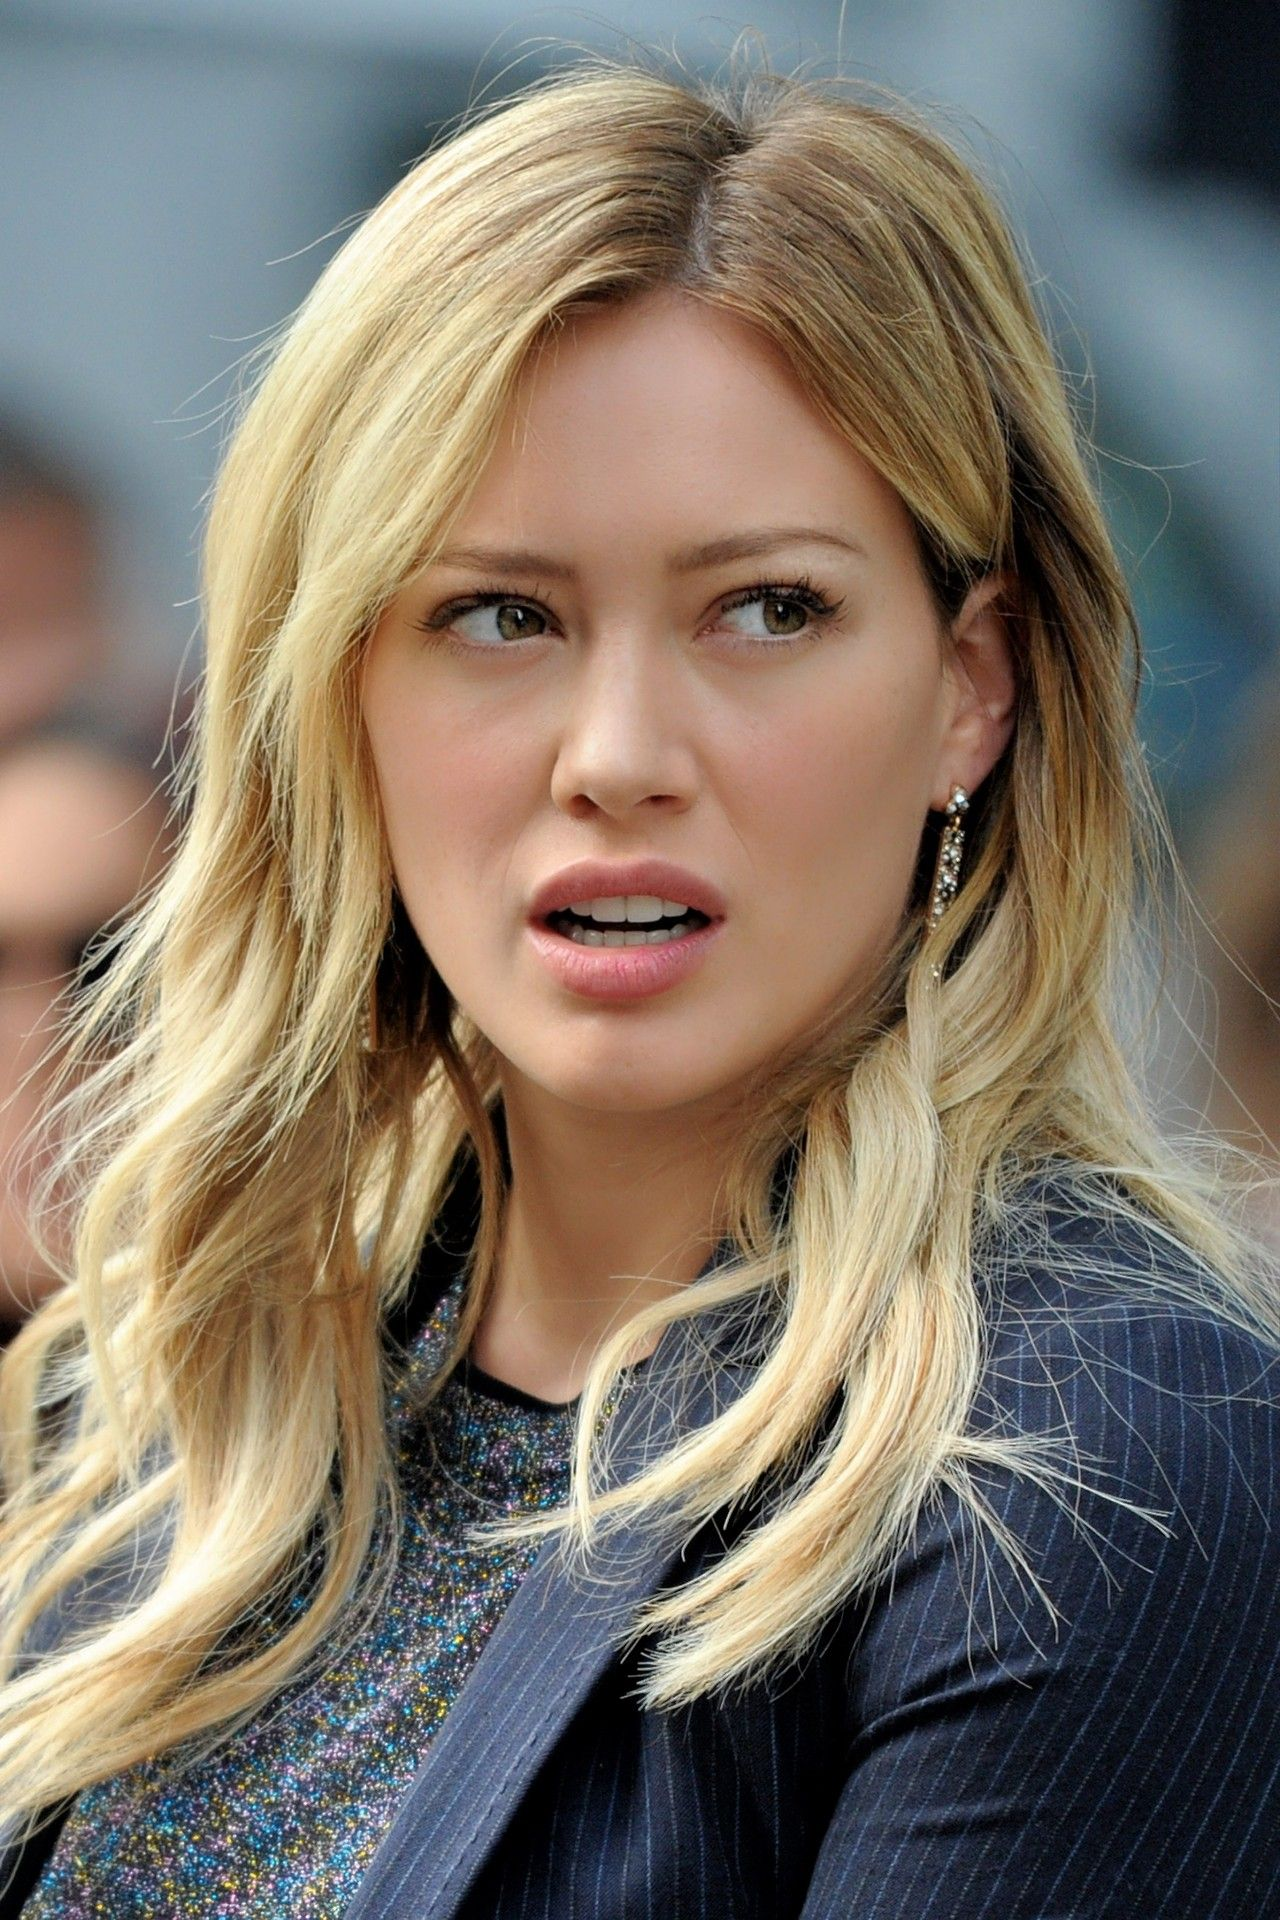 Pin by heather rose on hilary duff pinterest hilary duff and